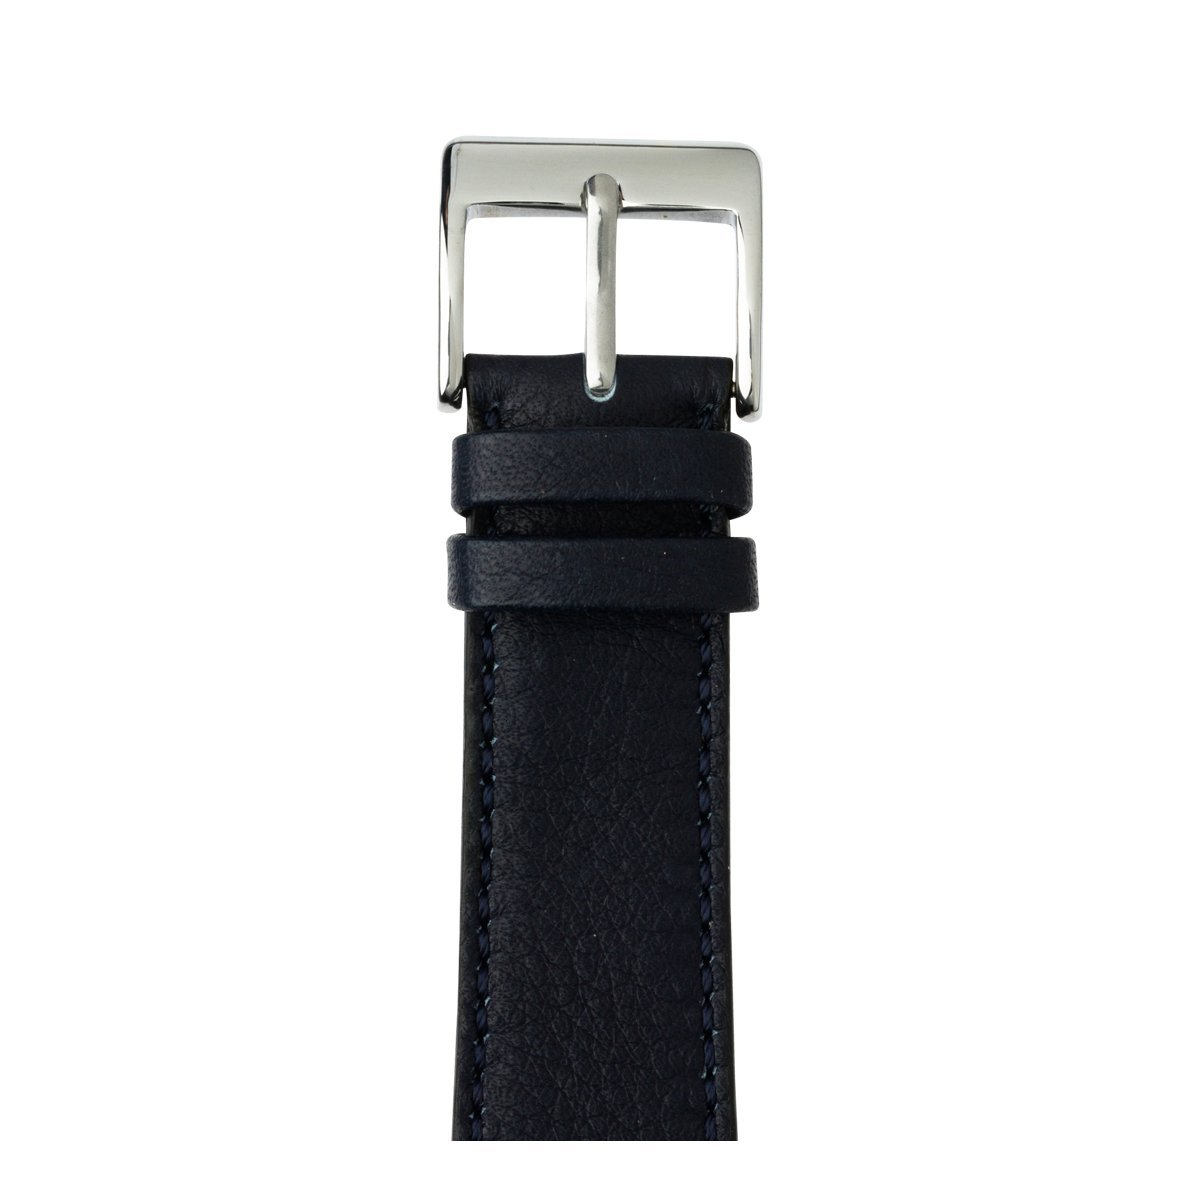 Roobaya | Premium Sauvage Leather Apple Watch Band in Dark Blue | Includes Adapters matching the Color of the Apple Watch, Case Color:Stainless Steel, Size:38 mm